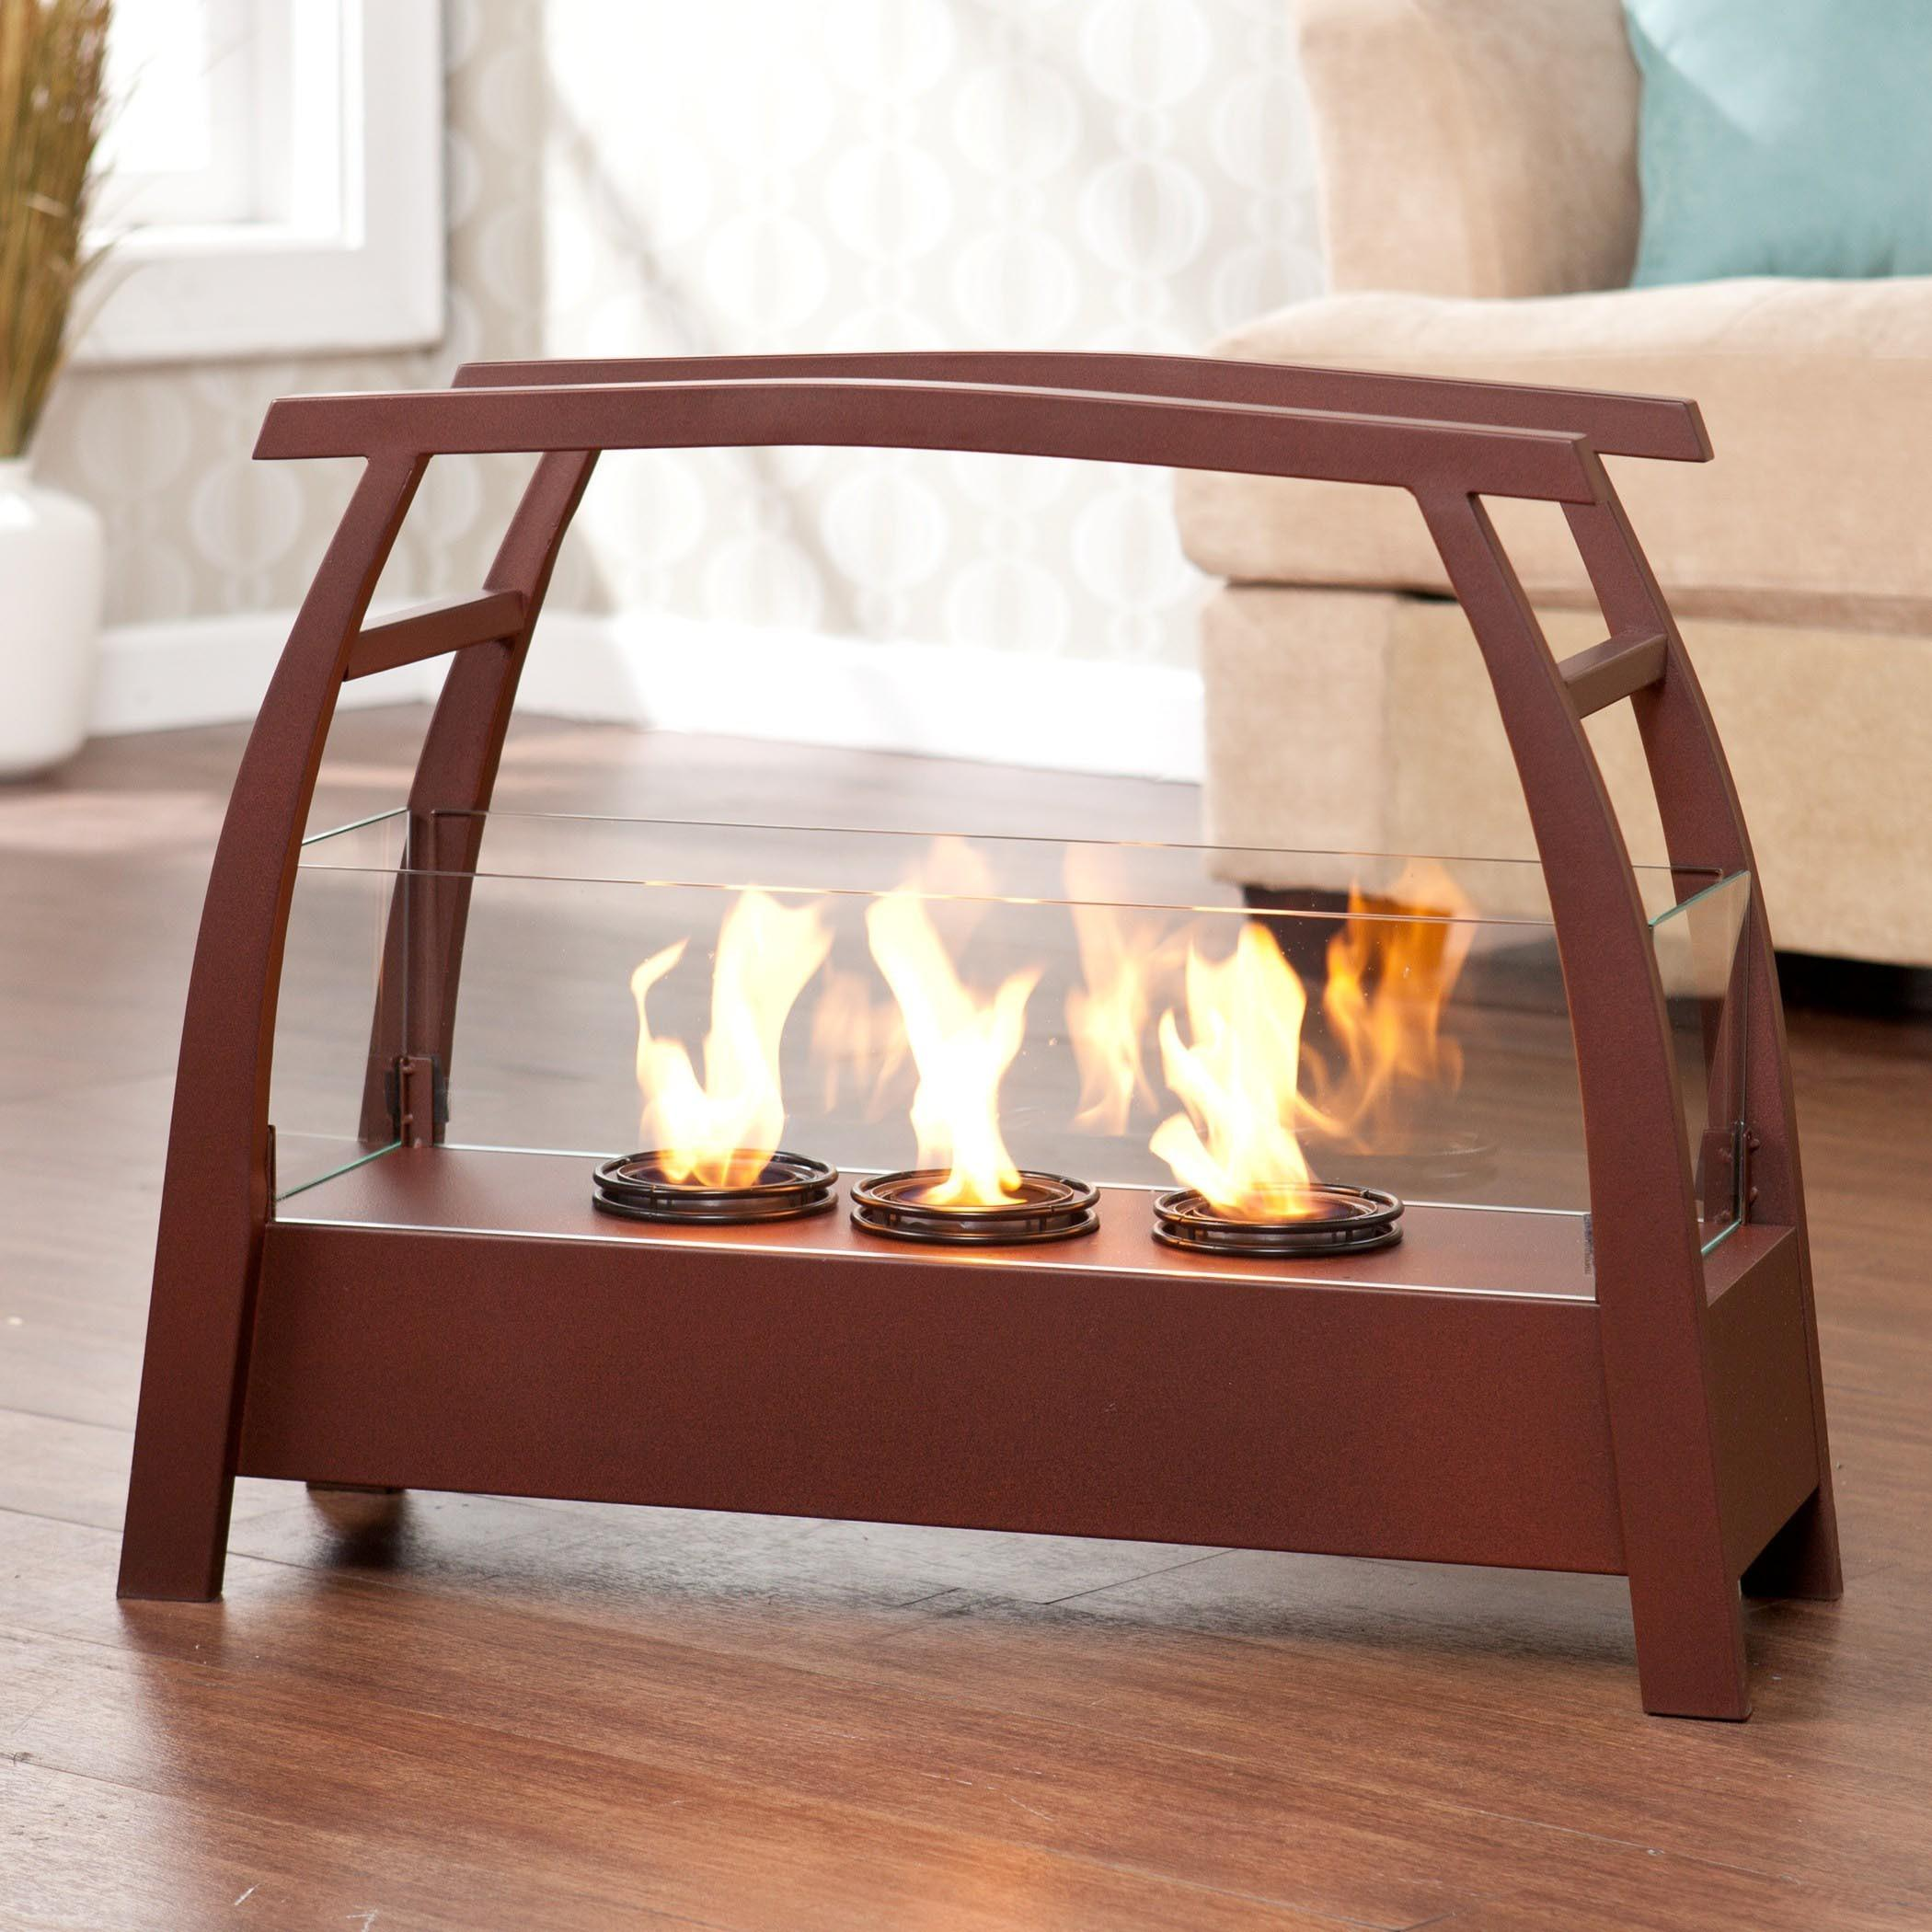 Furniture Designs Homemade Portable Fire Pit